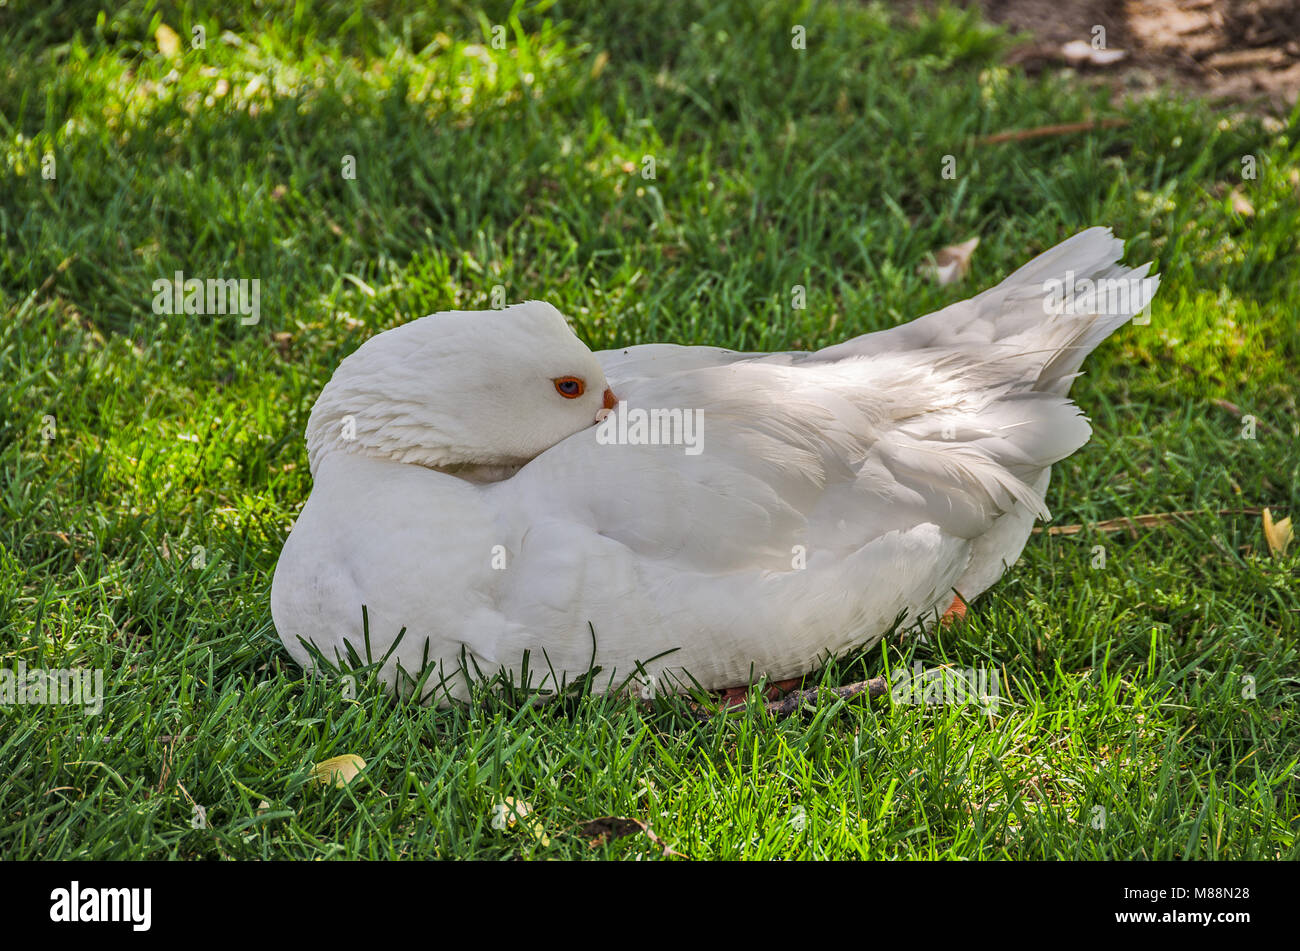 Domestic goose staying cool in the shade on the grass - Stock Image